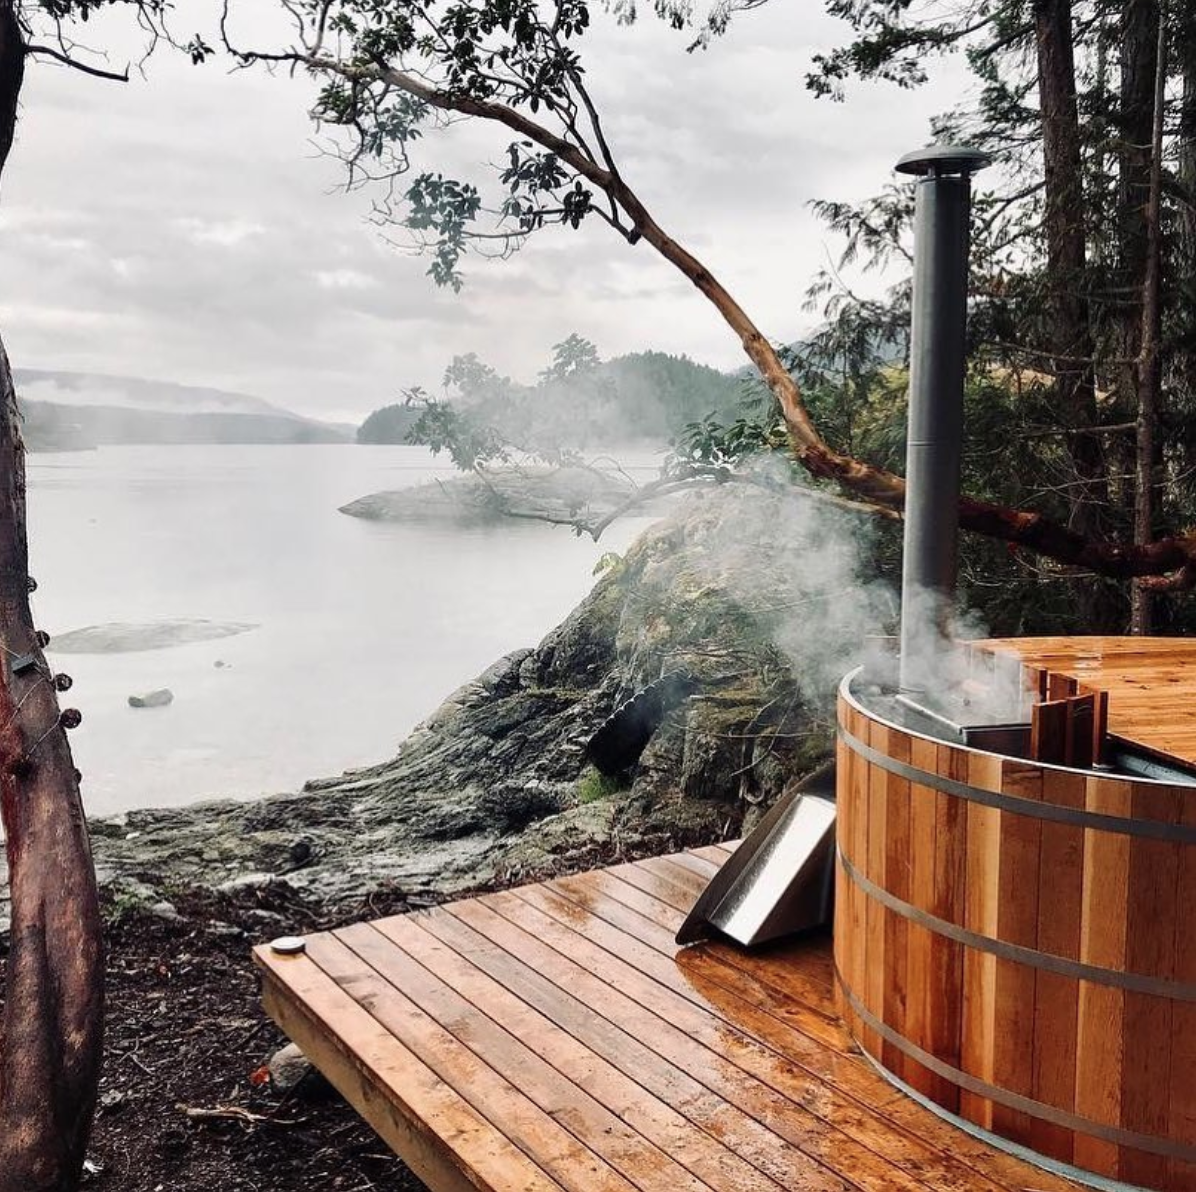 Wood Fired Cedar Hot Tubs Made In Canada Thoughtfully Designed Handcrafted And Quality Tested Uniquely Made To Guaran Cedar Hot Tub Hot Tub Outdoor Hot Tub